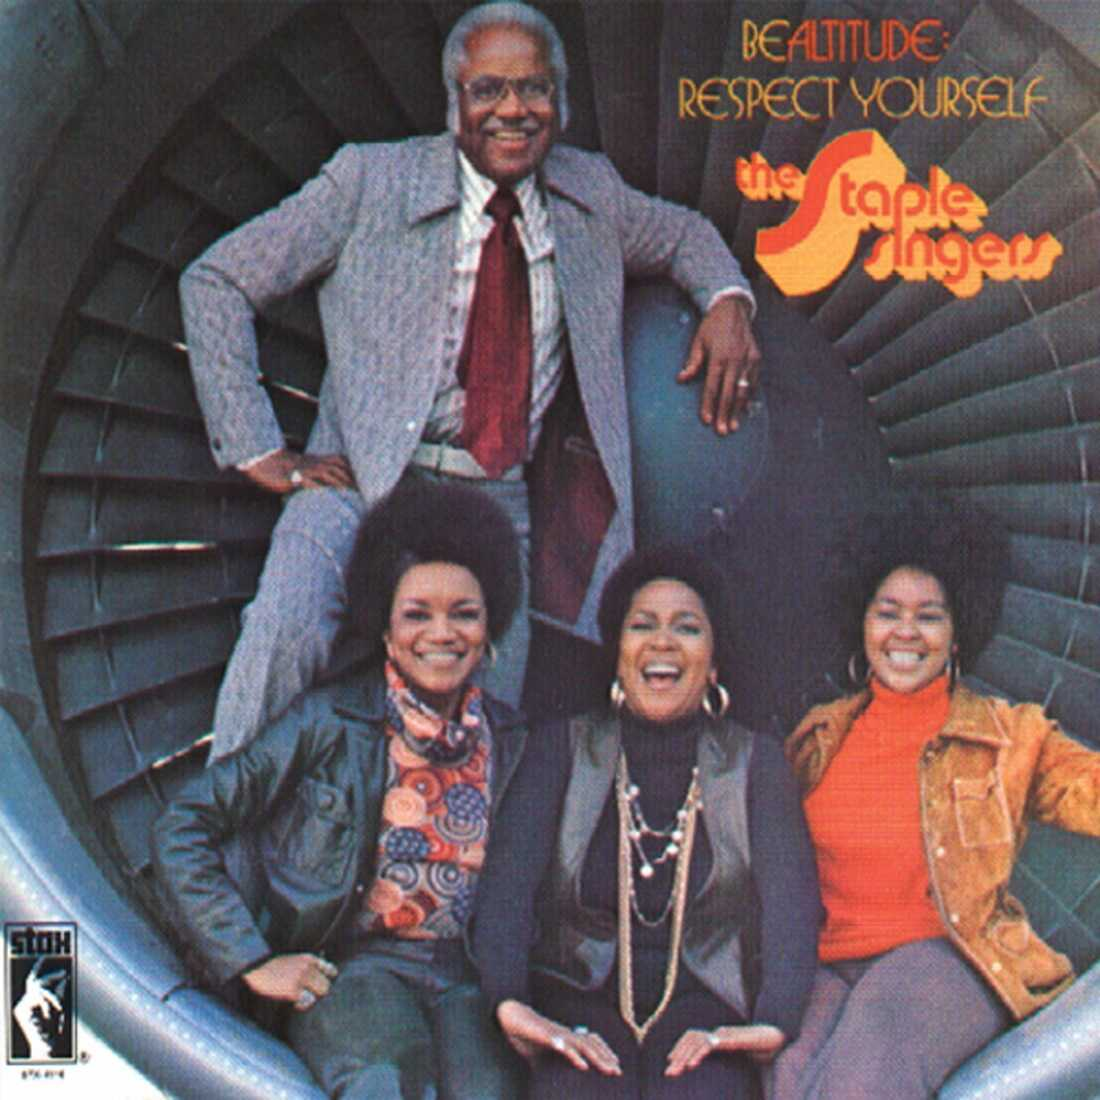 Be Altitude: Respect Yourself by the Staple Singers